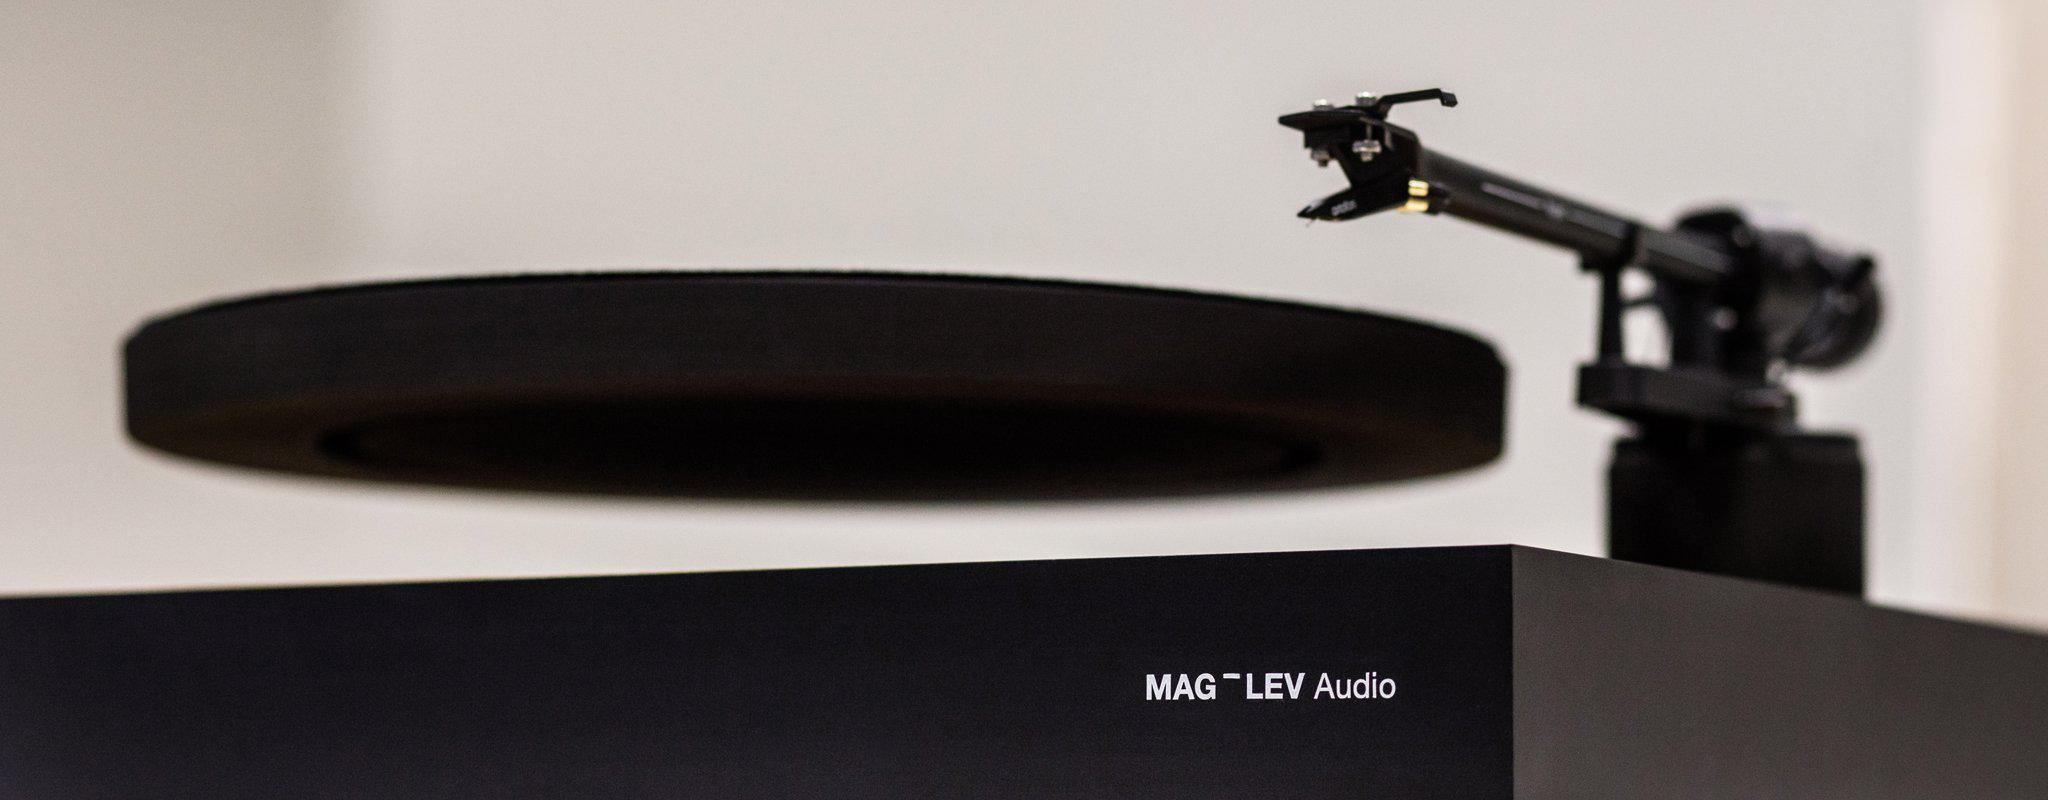 MAG-LEV Levitating Turntable - Wood-MAG-LEV Audio-Vinyl Revival